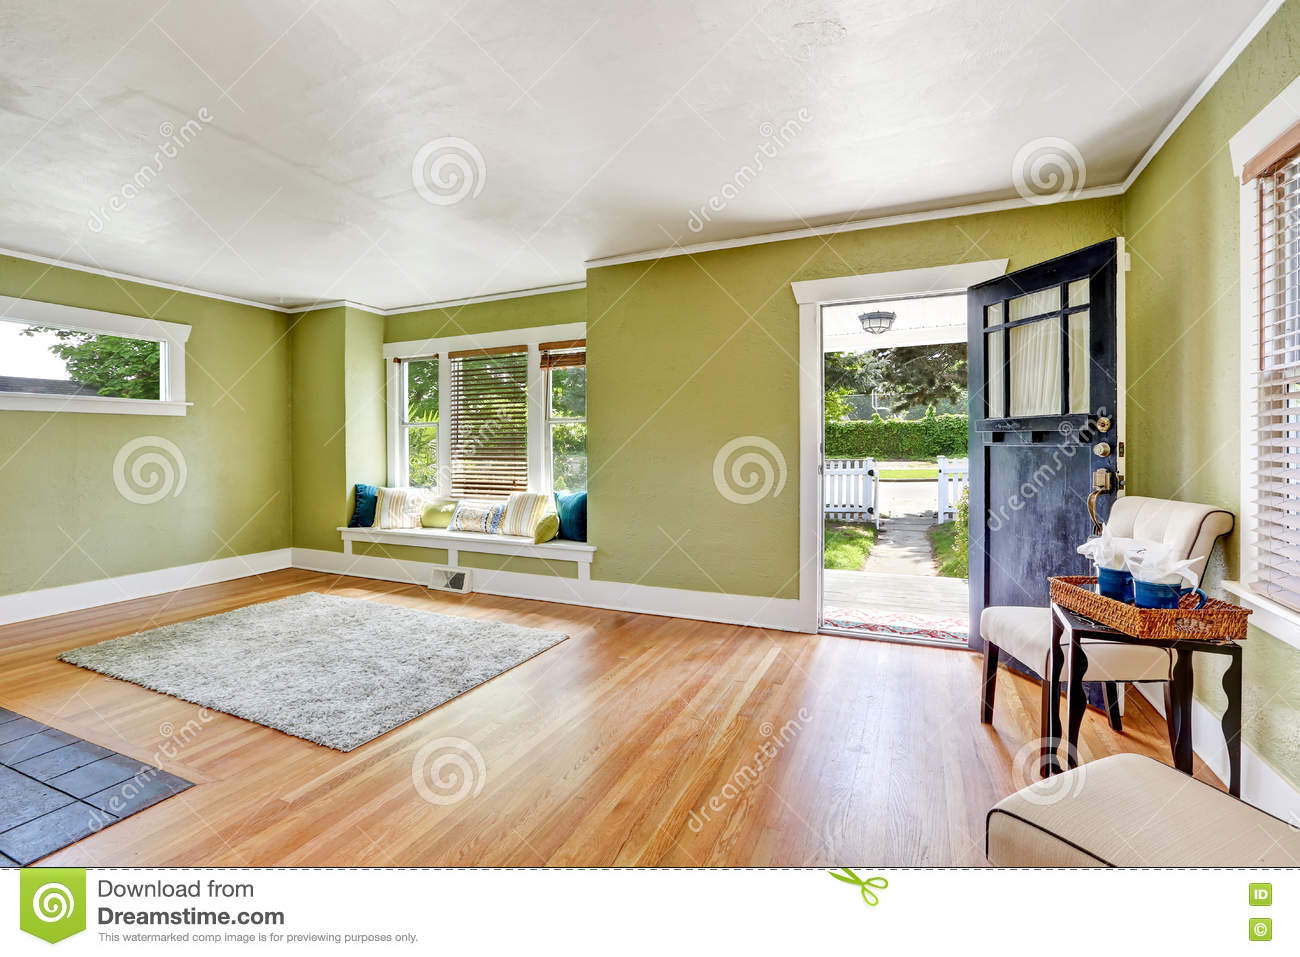 living room interior design of craftsman house stock photo - image